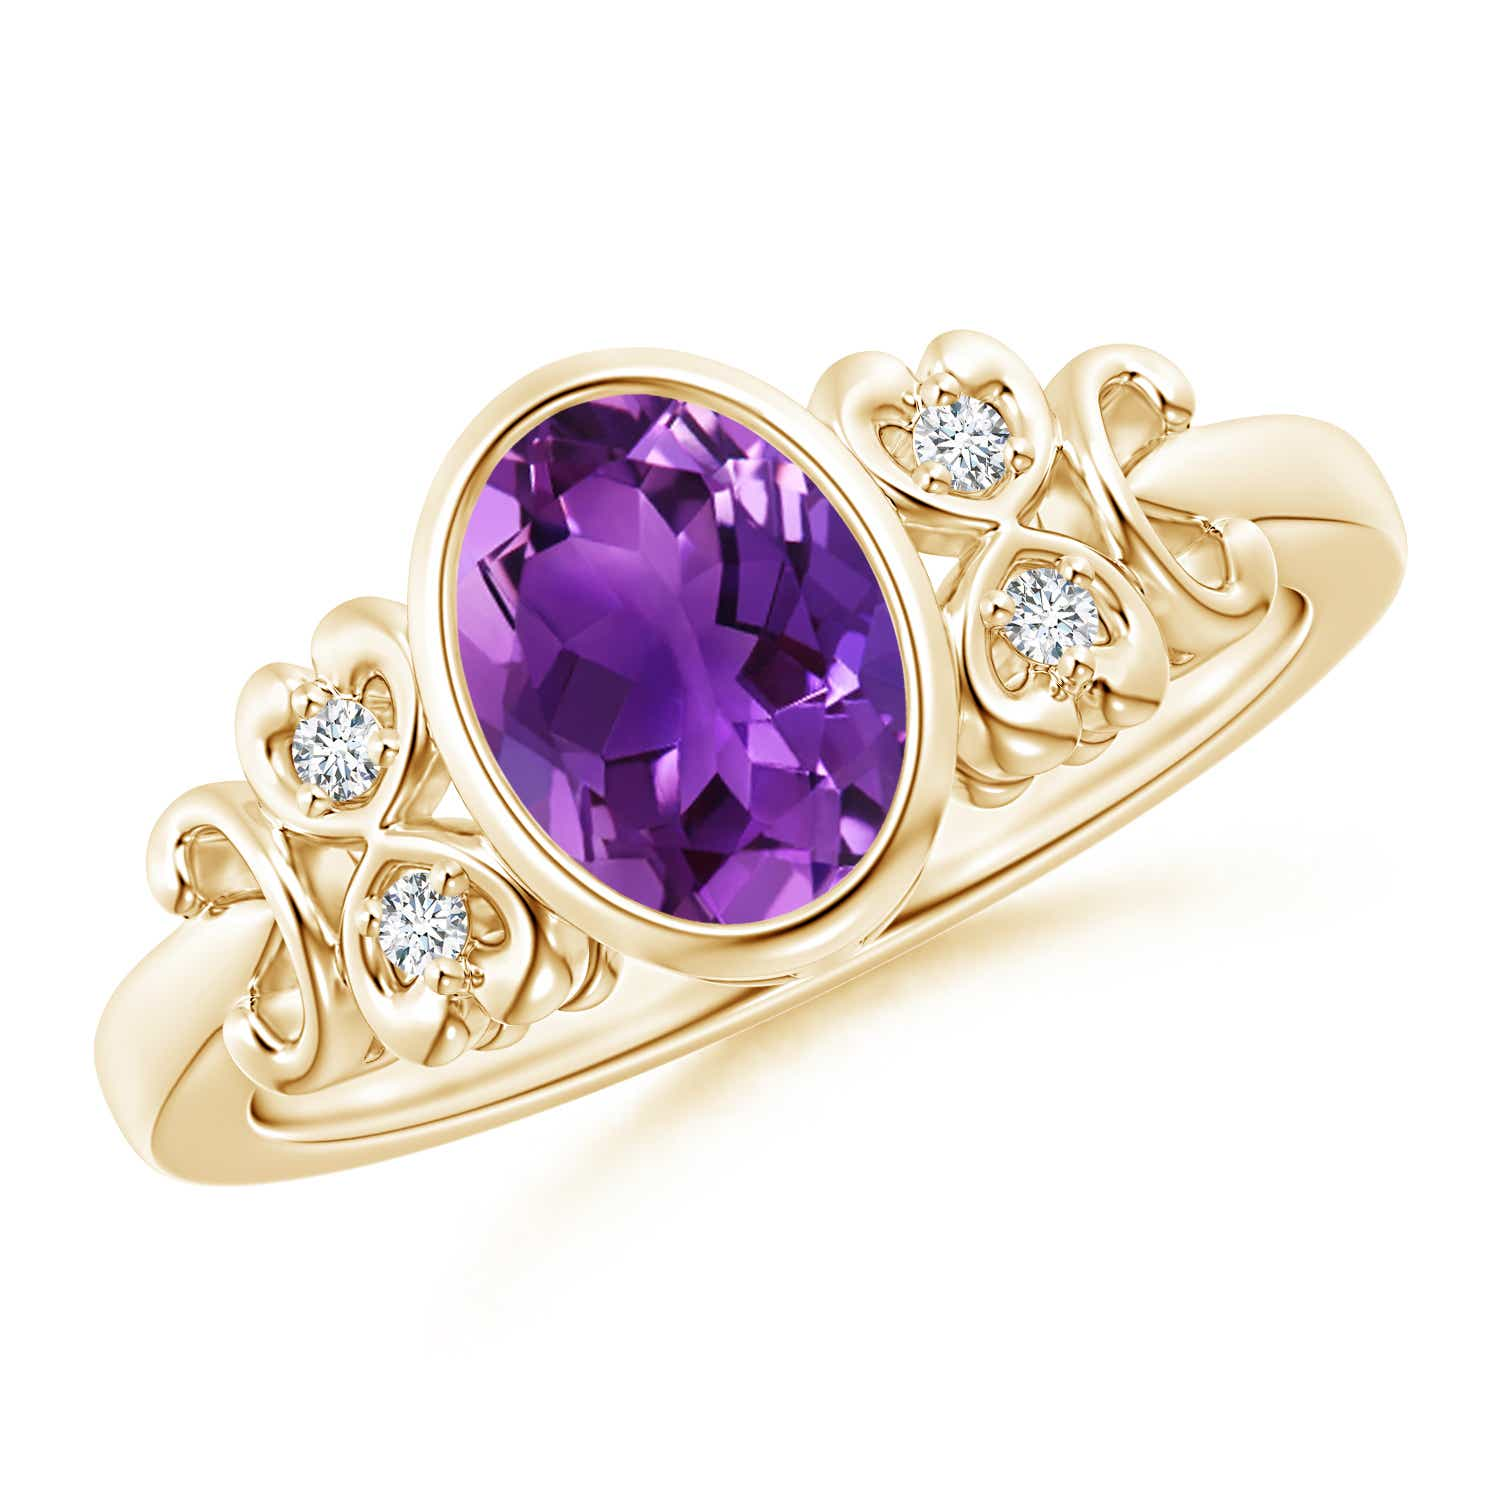 Angara Vintage Oval Amethyst Bezel Ring in Yellow Gold uNO7QkPO8